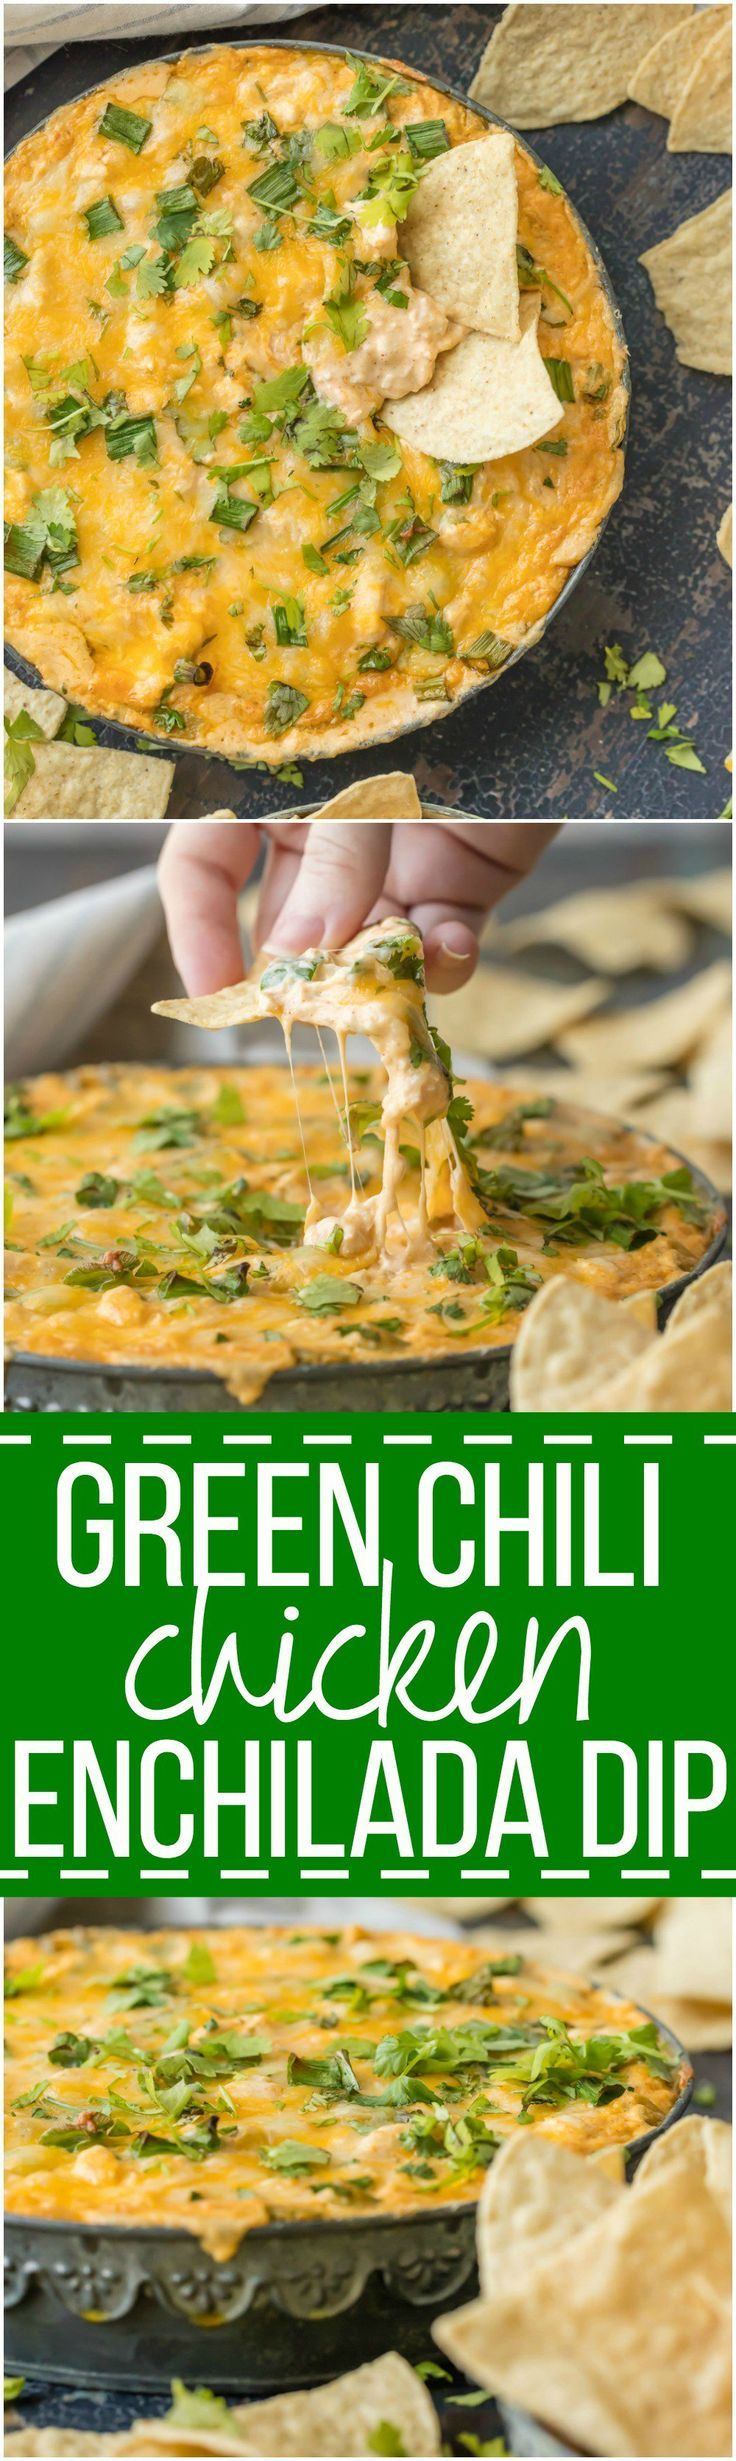 This GREEN CHILE CHICKEN ENCHILADA DIP is the ultimate party food, loaded with chicken, green chiles, cream cheese, sour cream, and so much more. It will be gone in minutes from any get together. via /beckygallhardin/